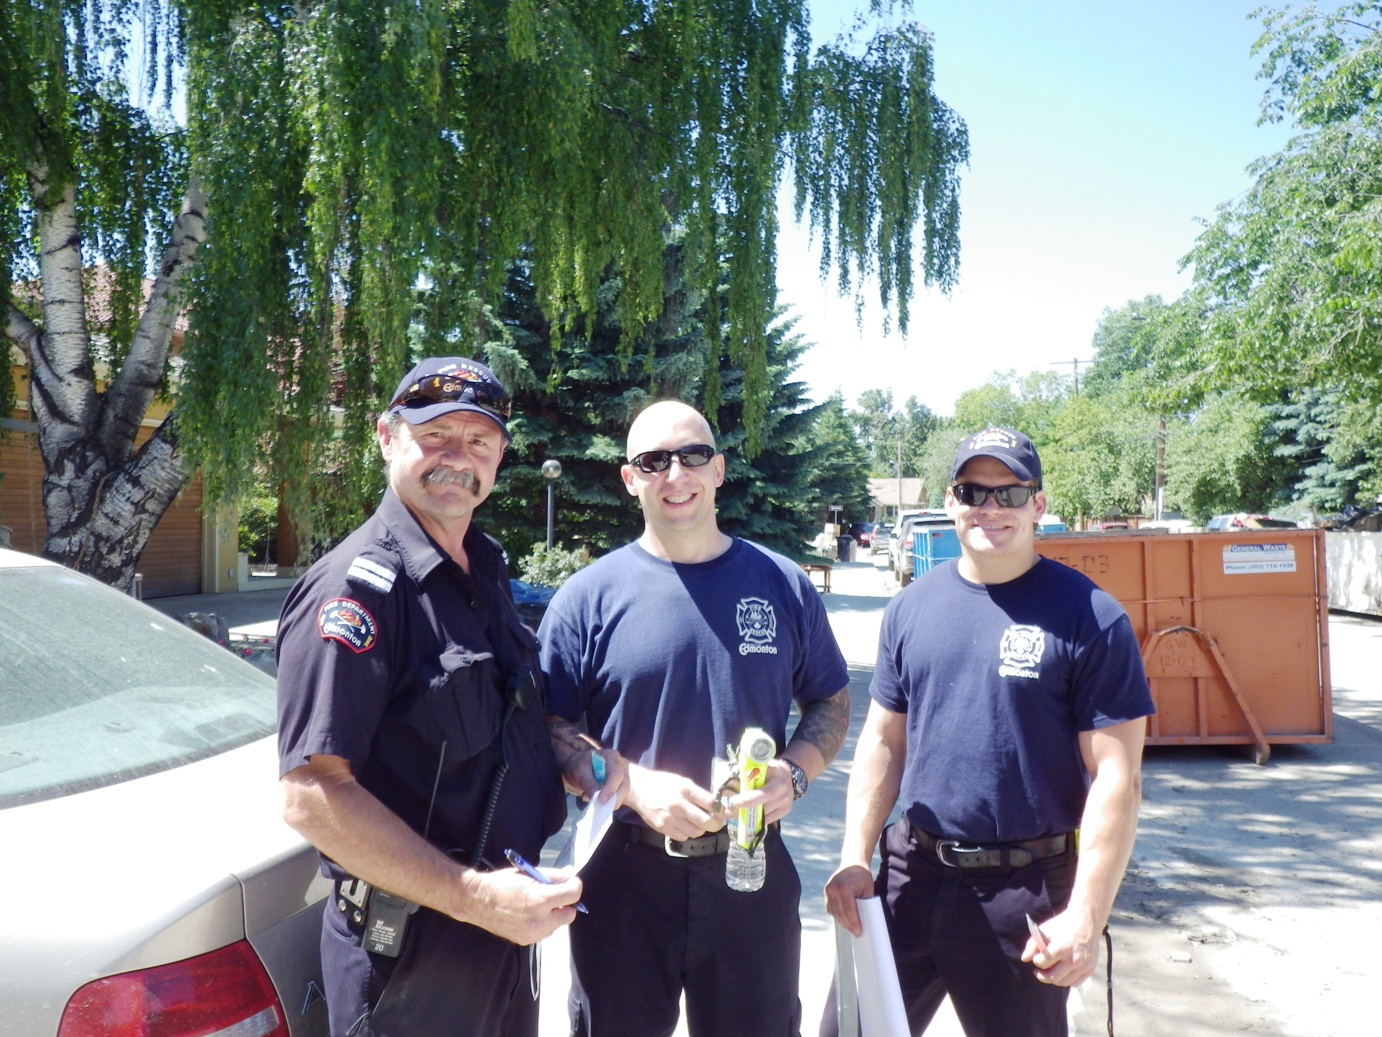 Edmonton firefighters. They like freezies too.